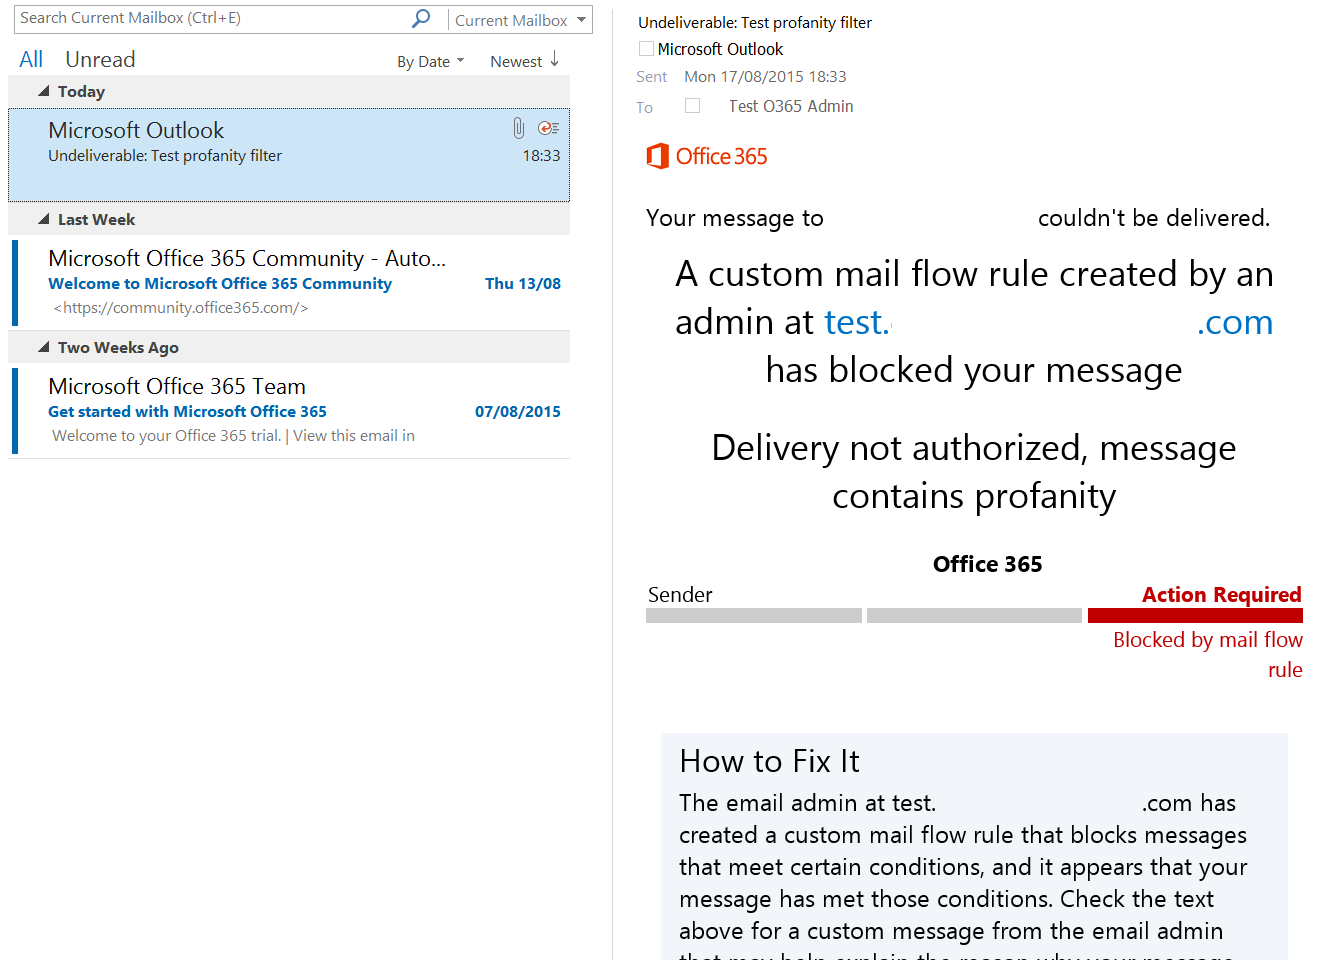 NDR from message blocked by Office 365 profanity filter